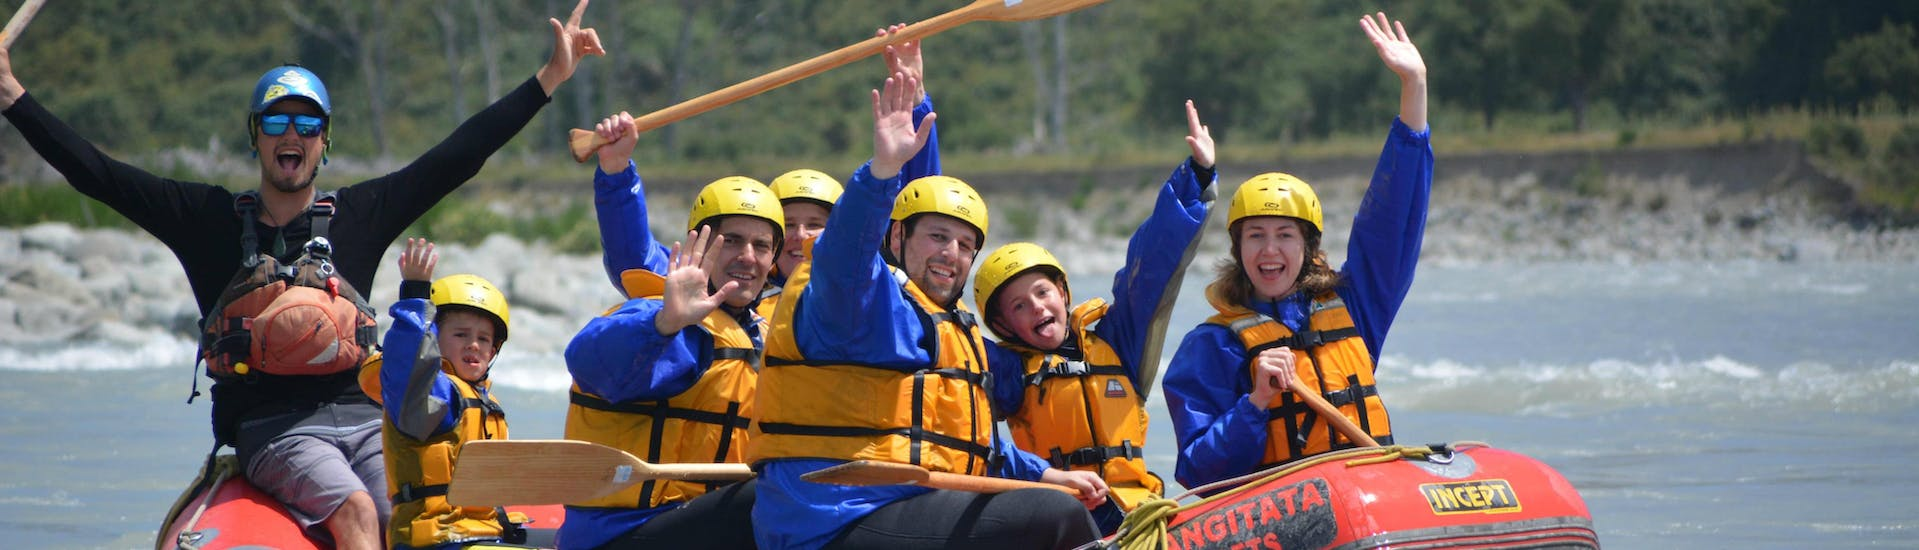 A family is having fun on the river during their Lower Rangitata Rafting with Christchurch transfer organized by Rangitaiki Rafts.